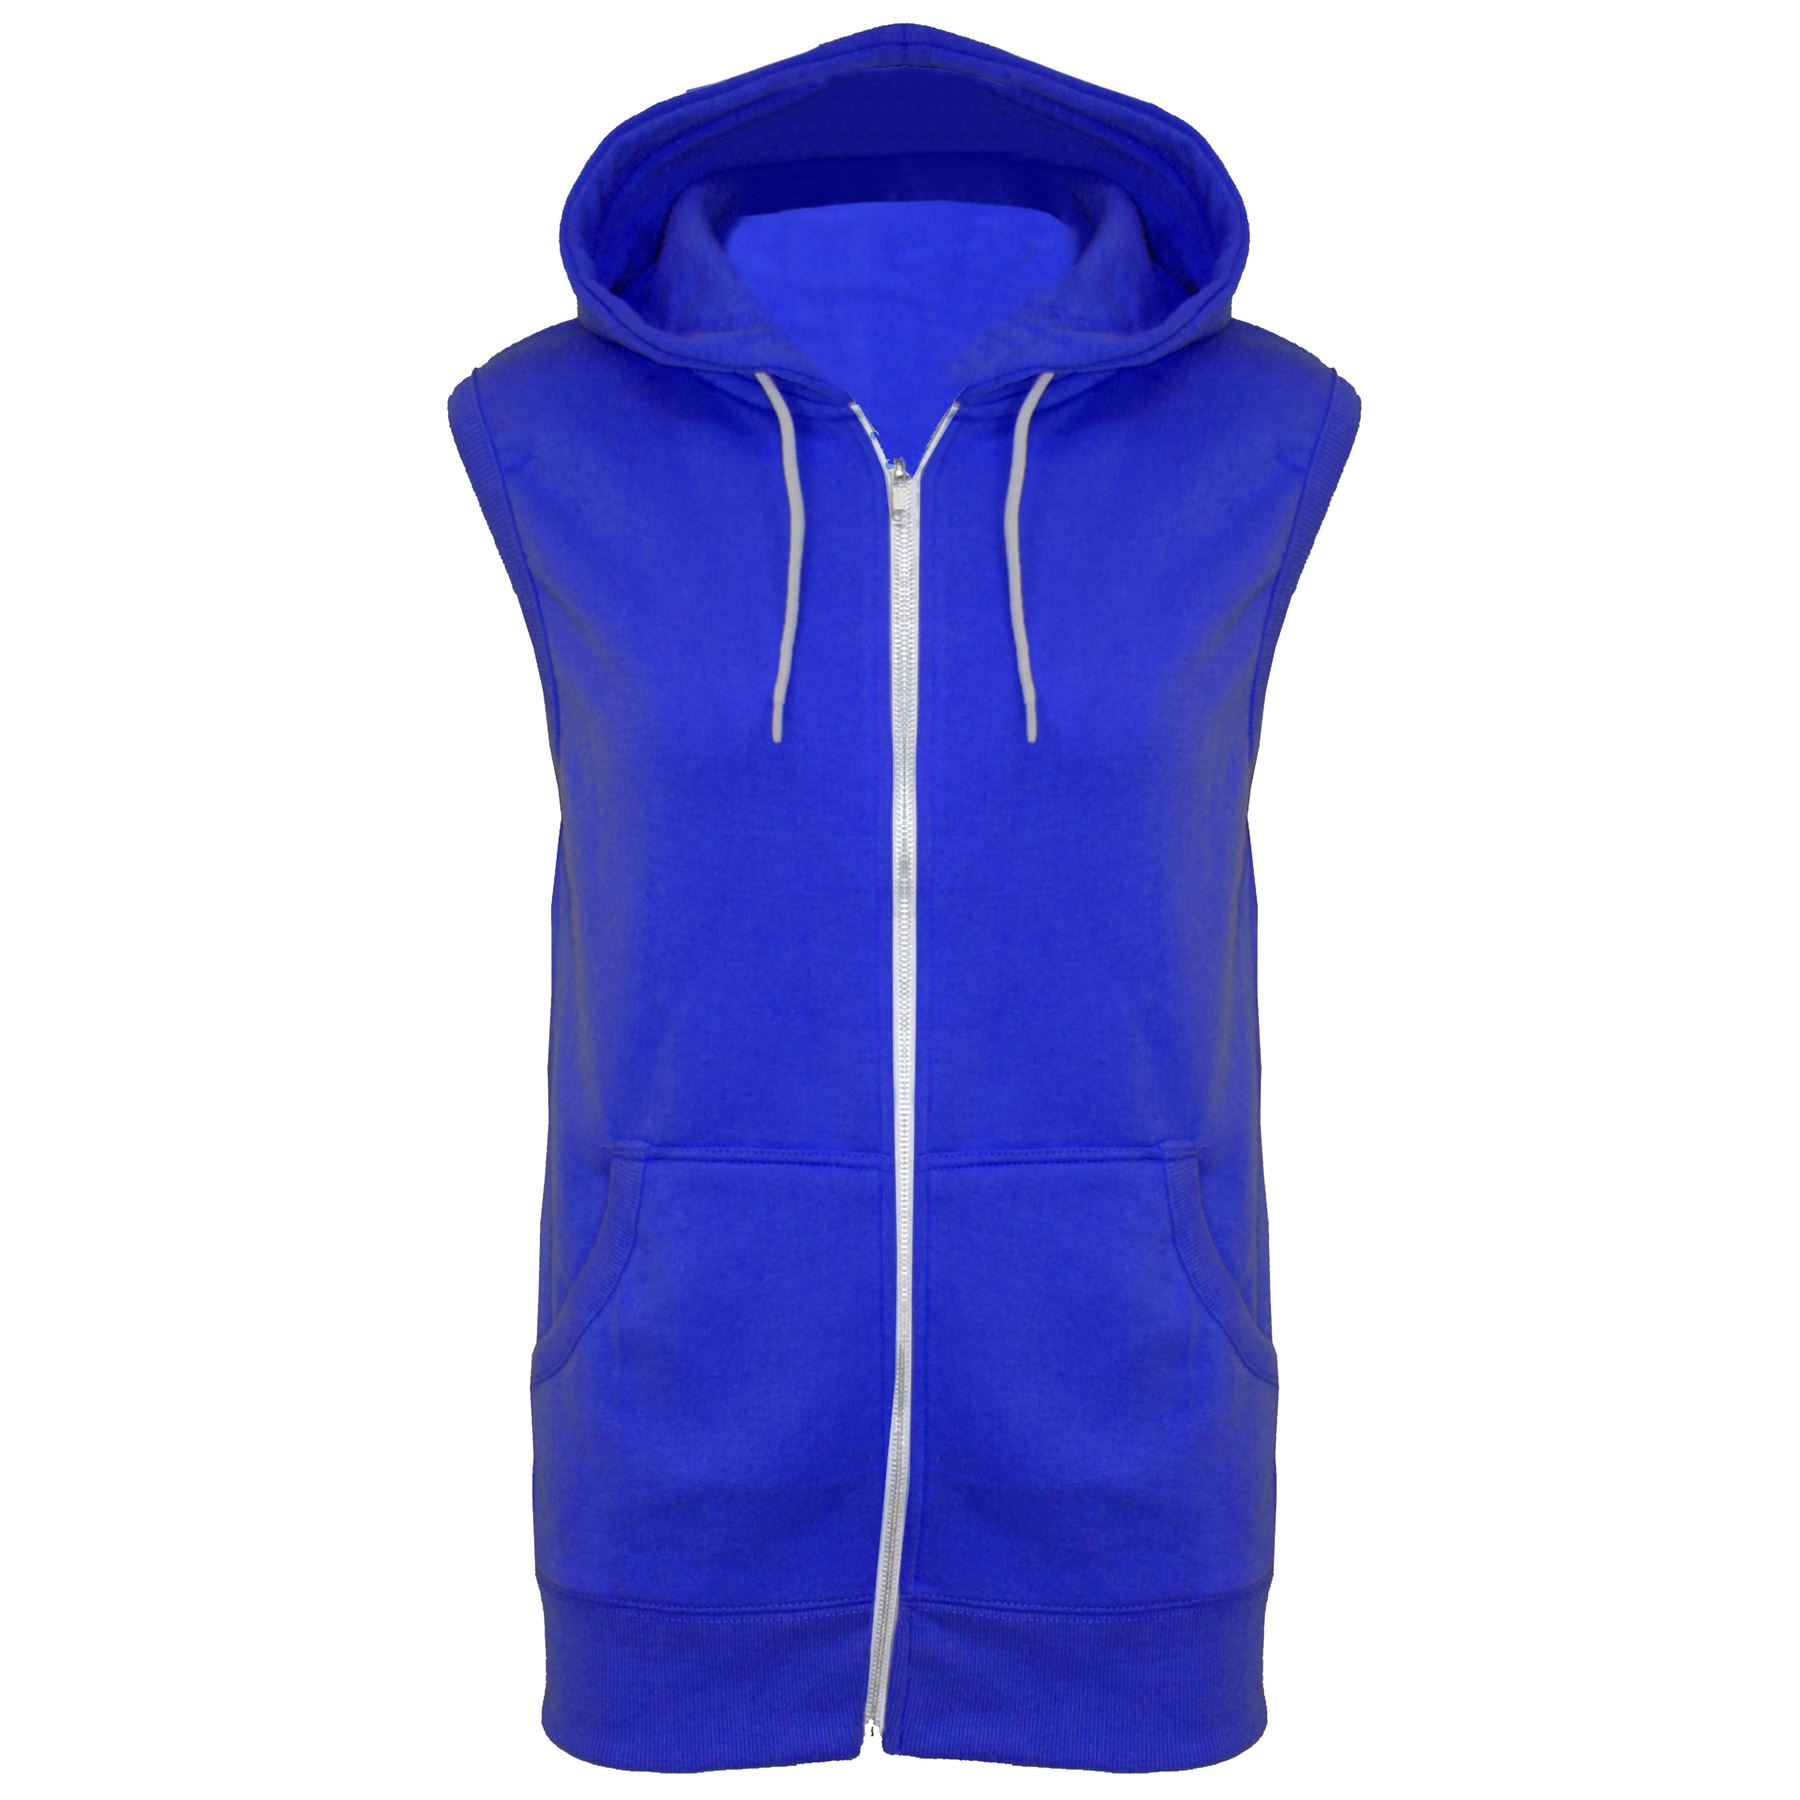 Mens-Sleeveless-Hooded-Zipper-Sweatshirt-Hoodie-Casual-Gilet-Jacket-Jumper-Top